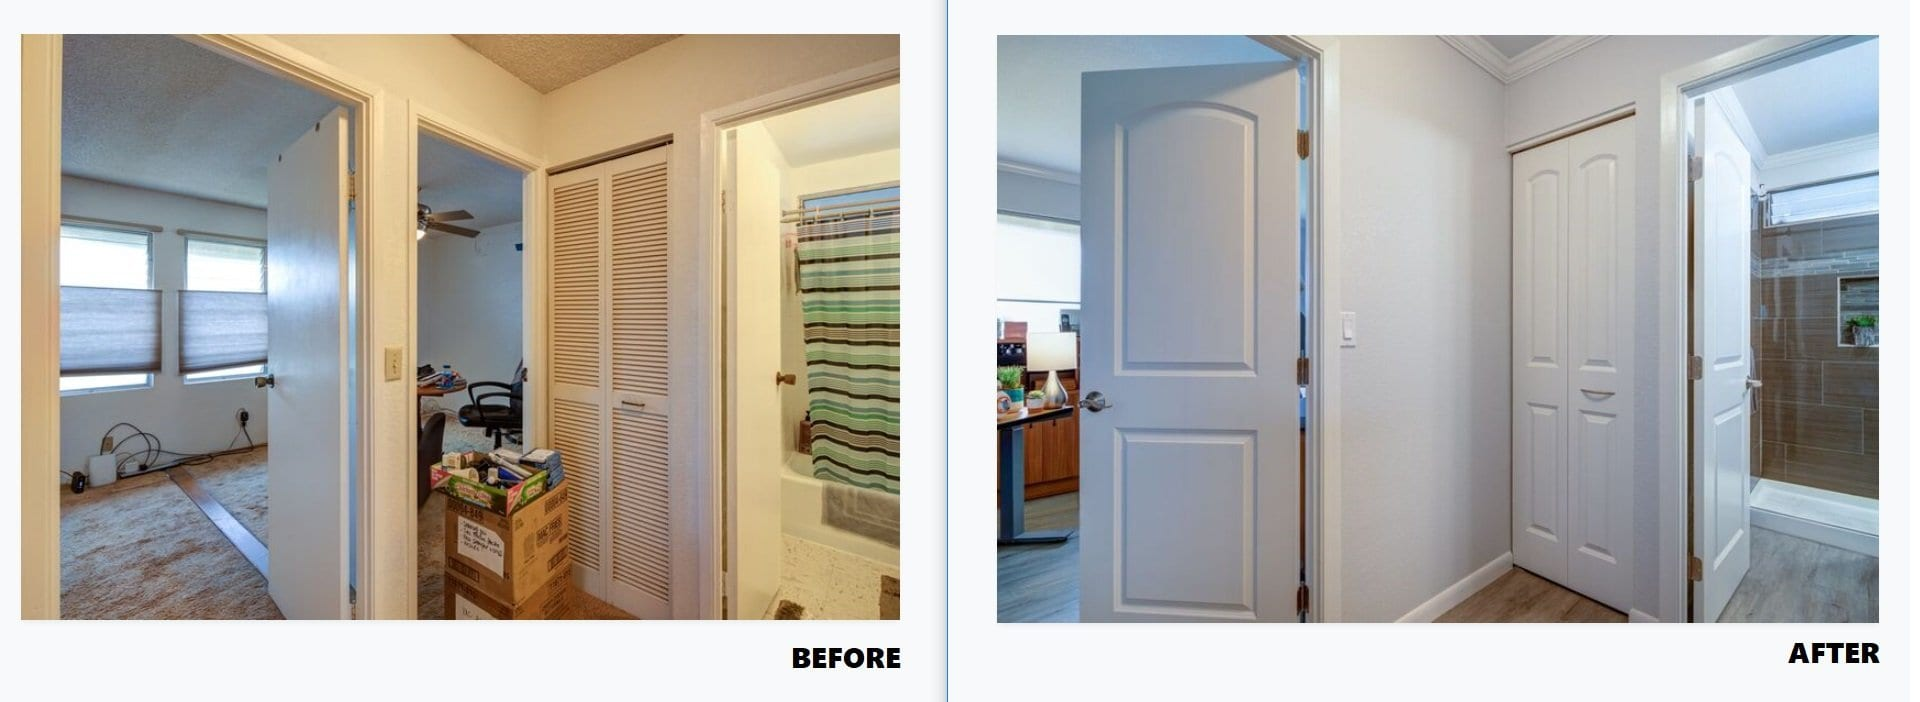 Mililani Makeover - Before & After Bedrooms